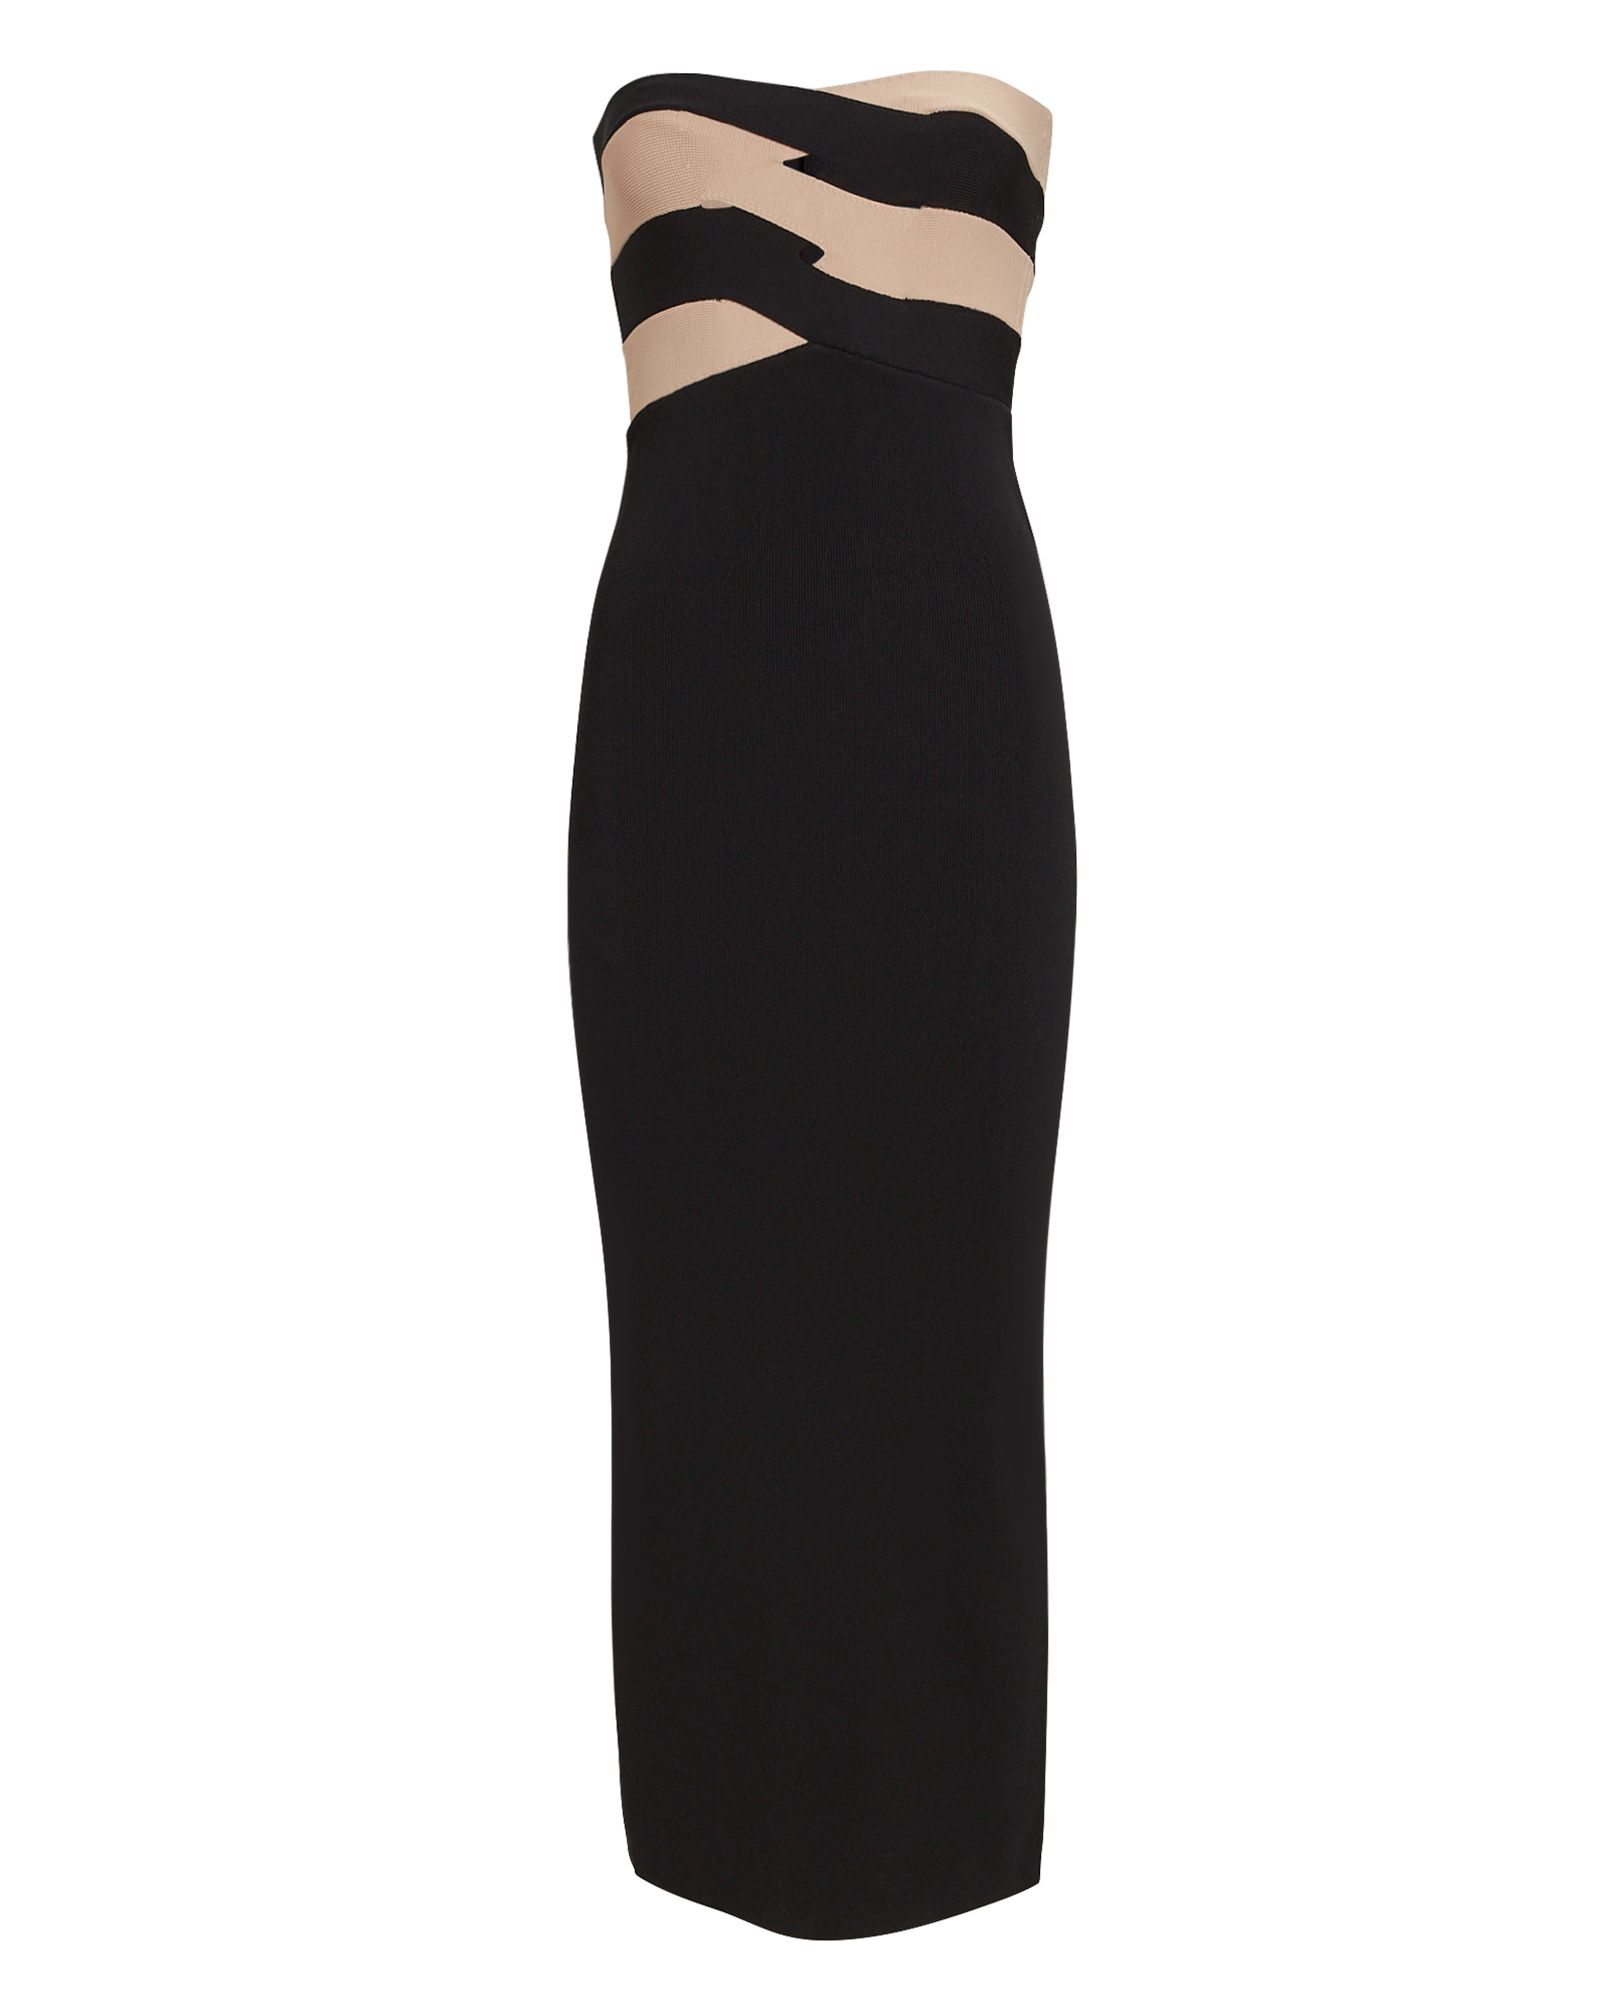 Dion Lee Knits INTERLOCKING KNIT BUSTIER MIDI DRESS